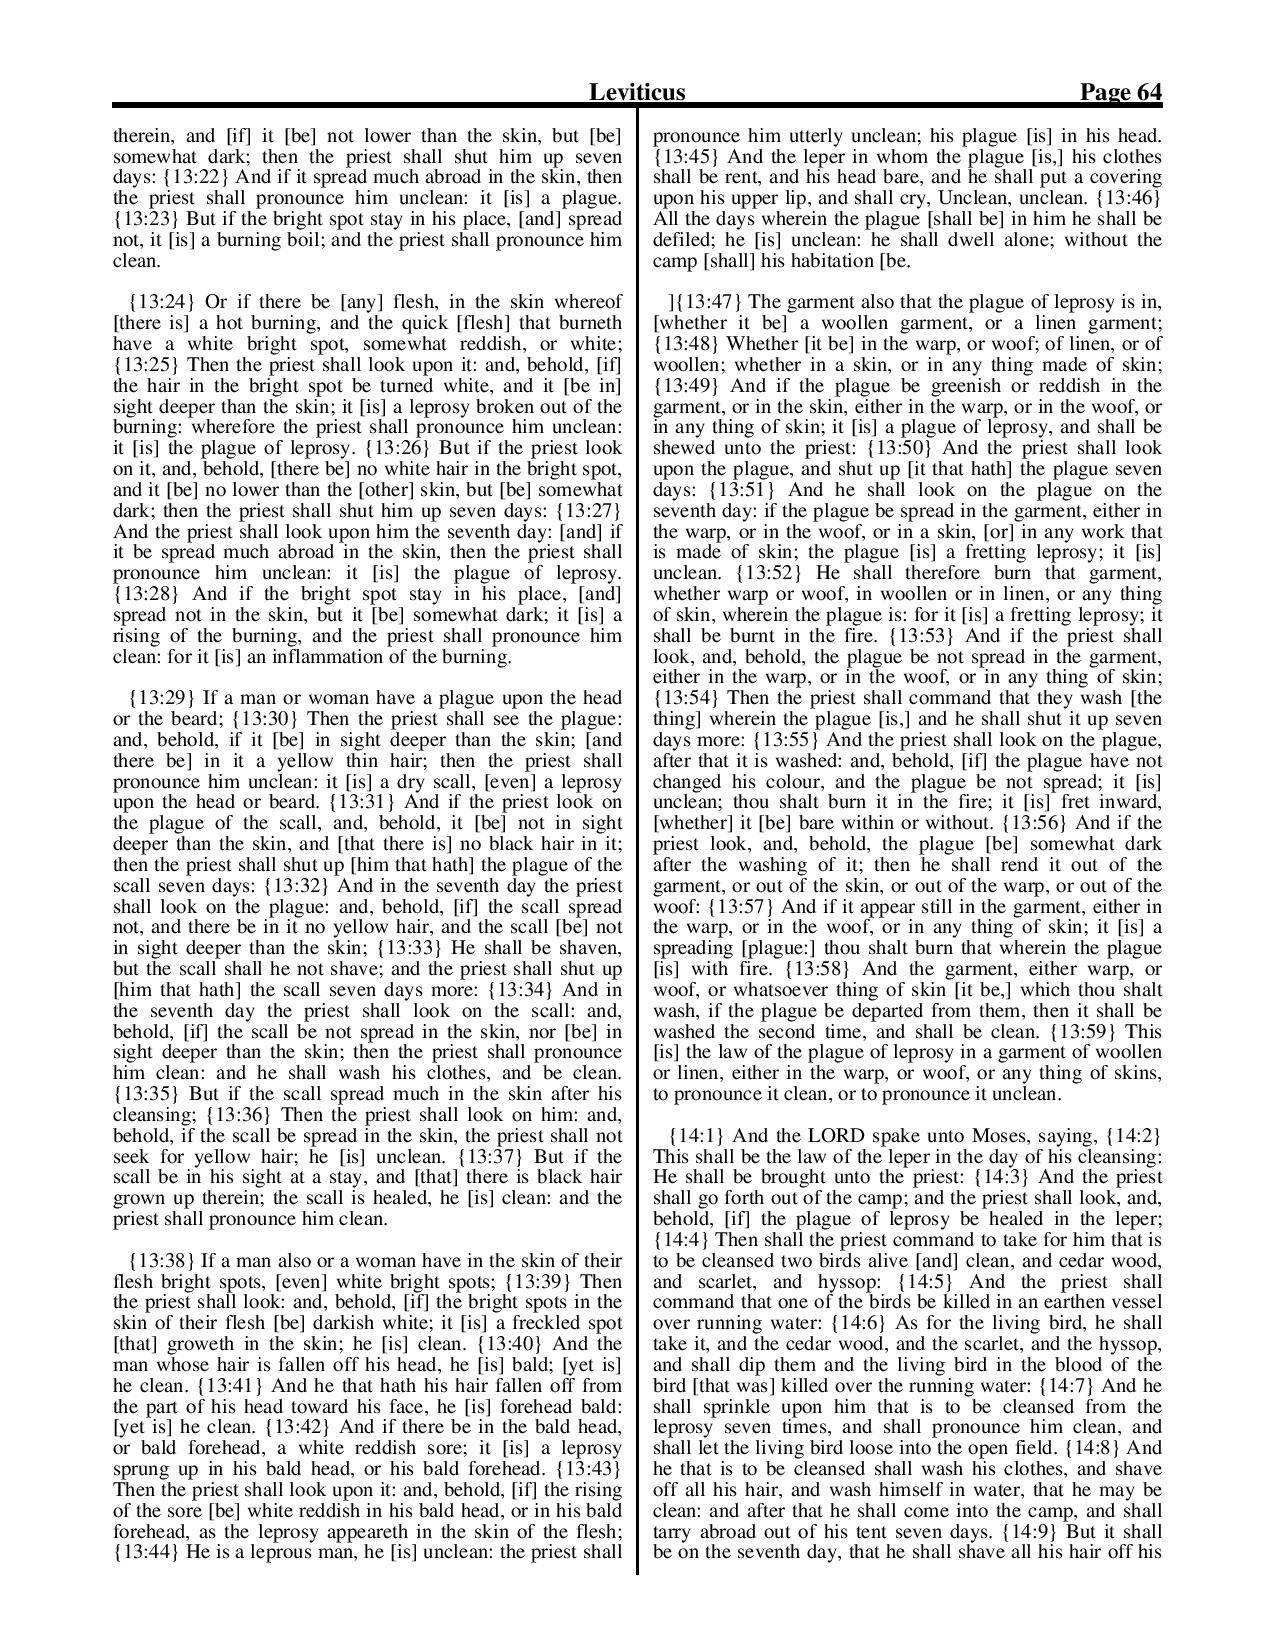 King-James-Bible-KJV-Bible-PDF-page-085